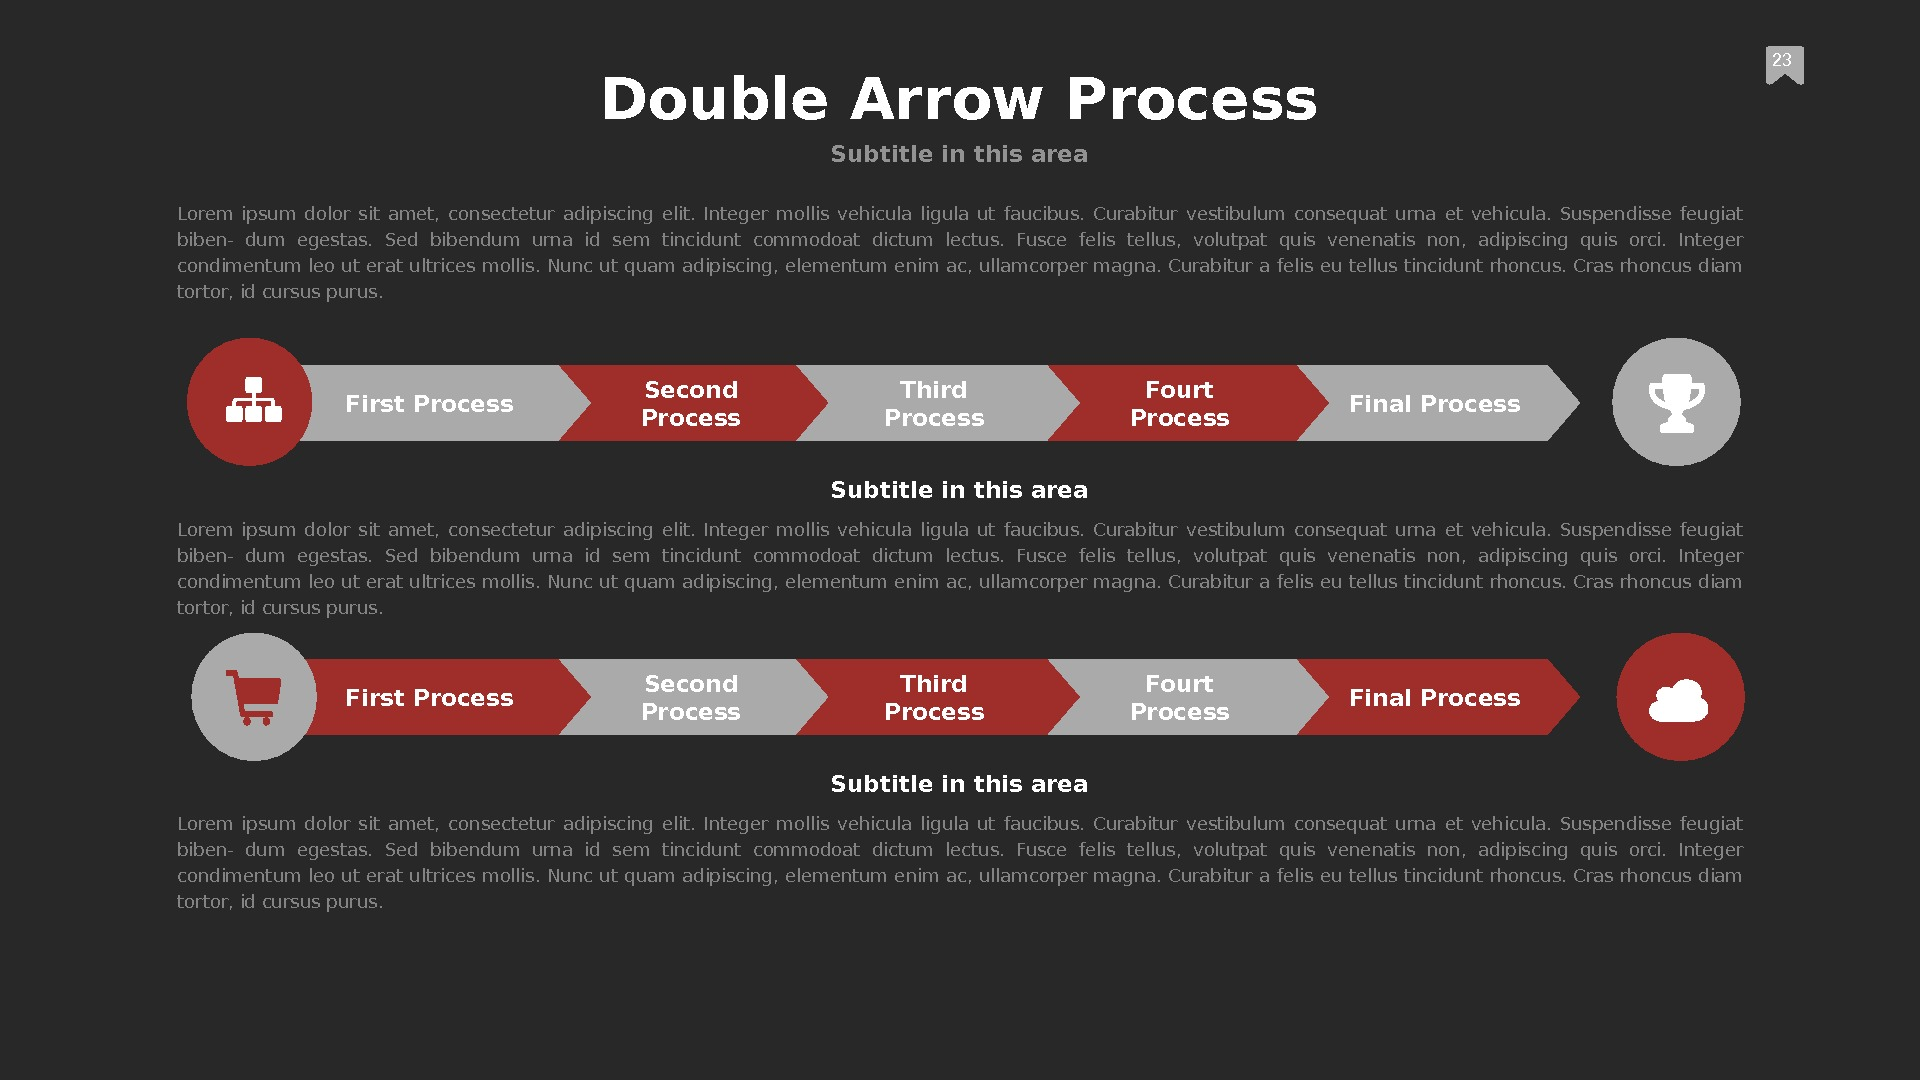 First Process Second Process Third Process Fourt Process Final Process 23 Double Arrow Process Subtitle in